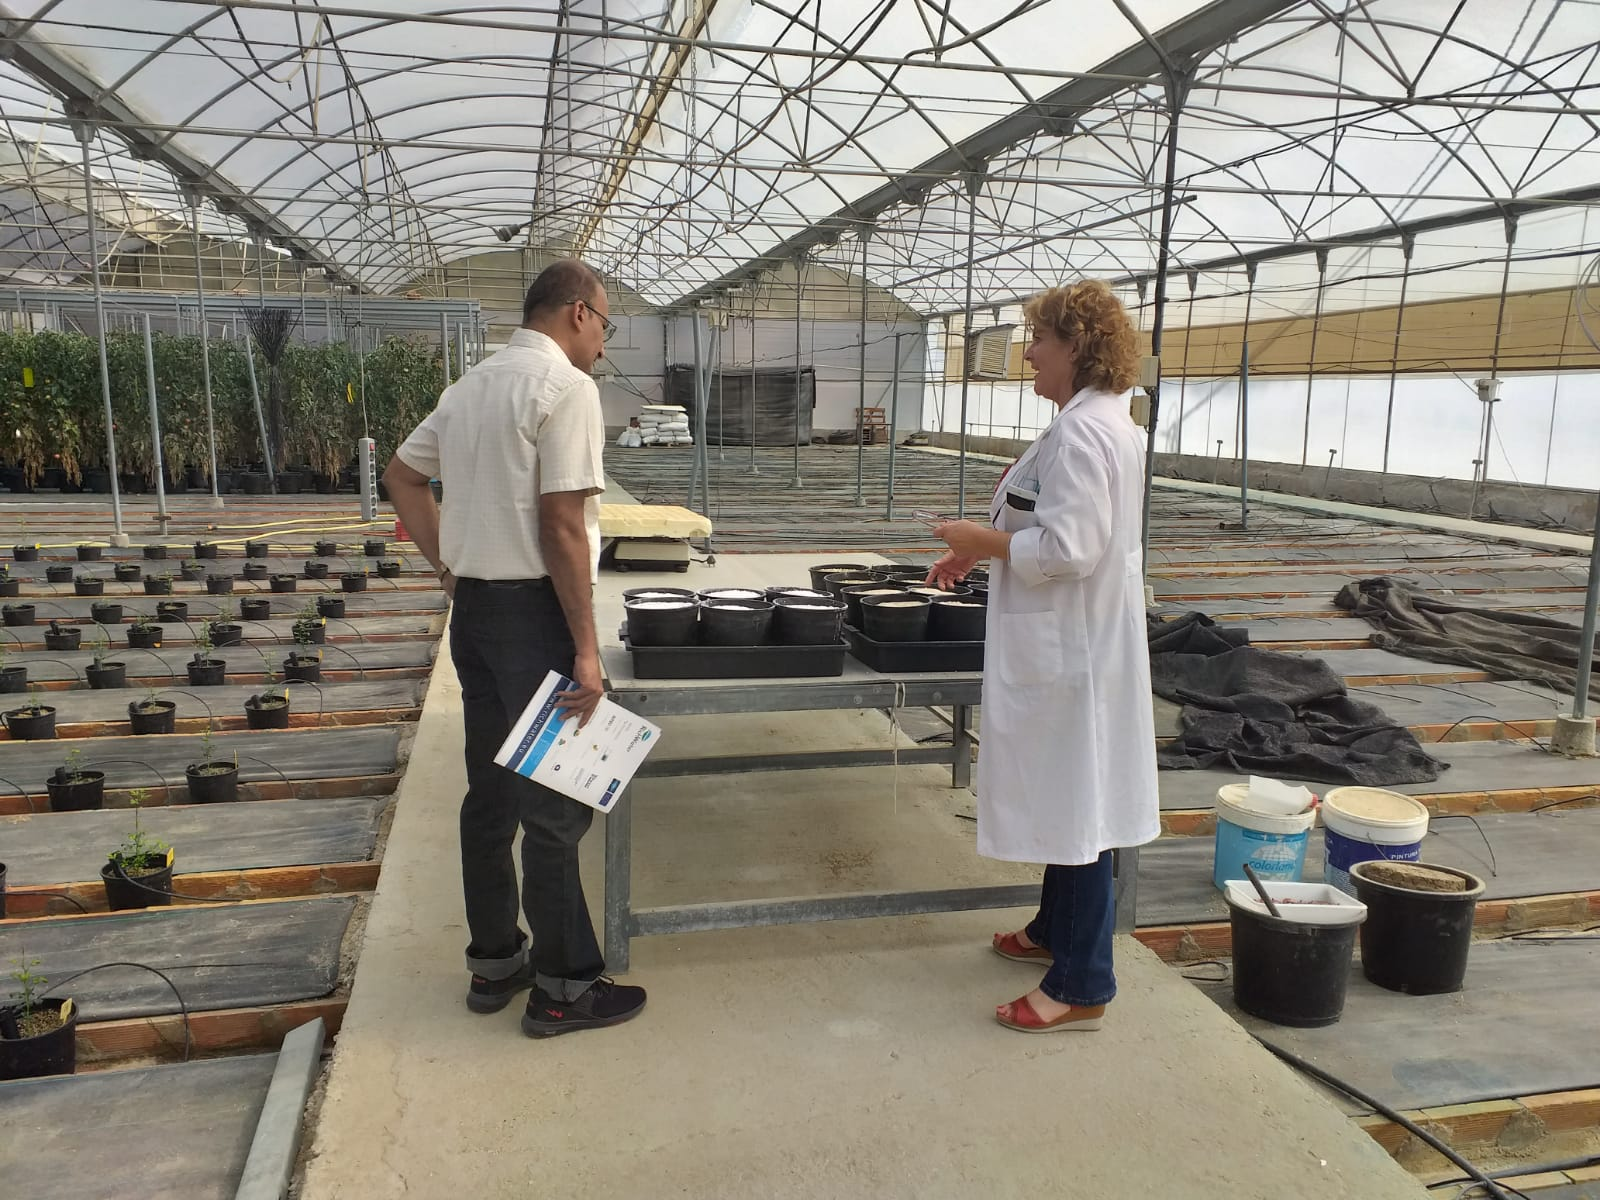 Visit of Prof. Girish to the RichWater site